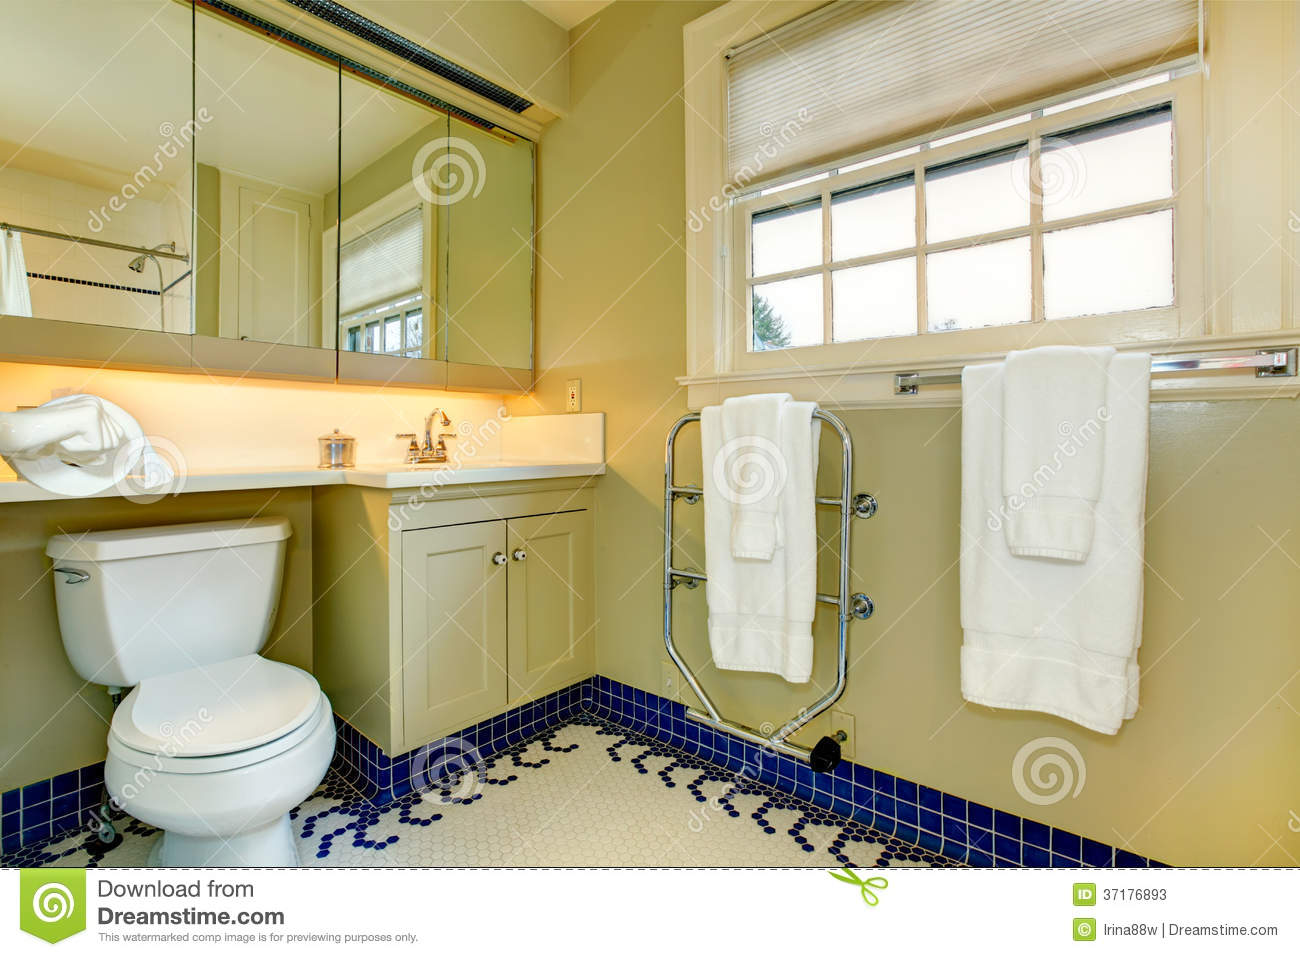 Blue Bathroom Decorations